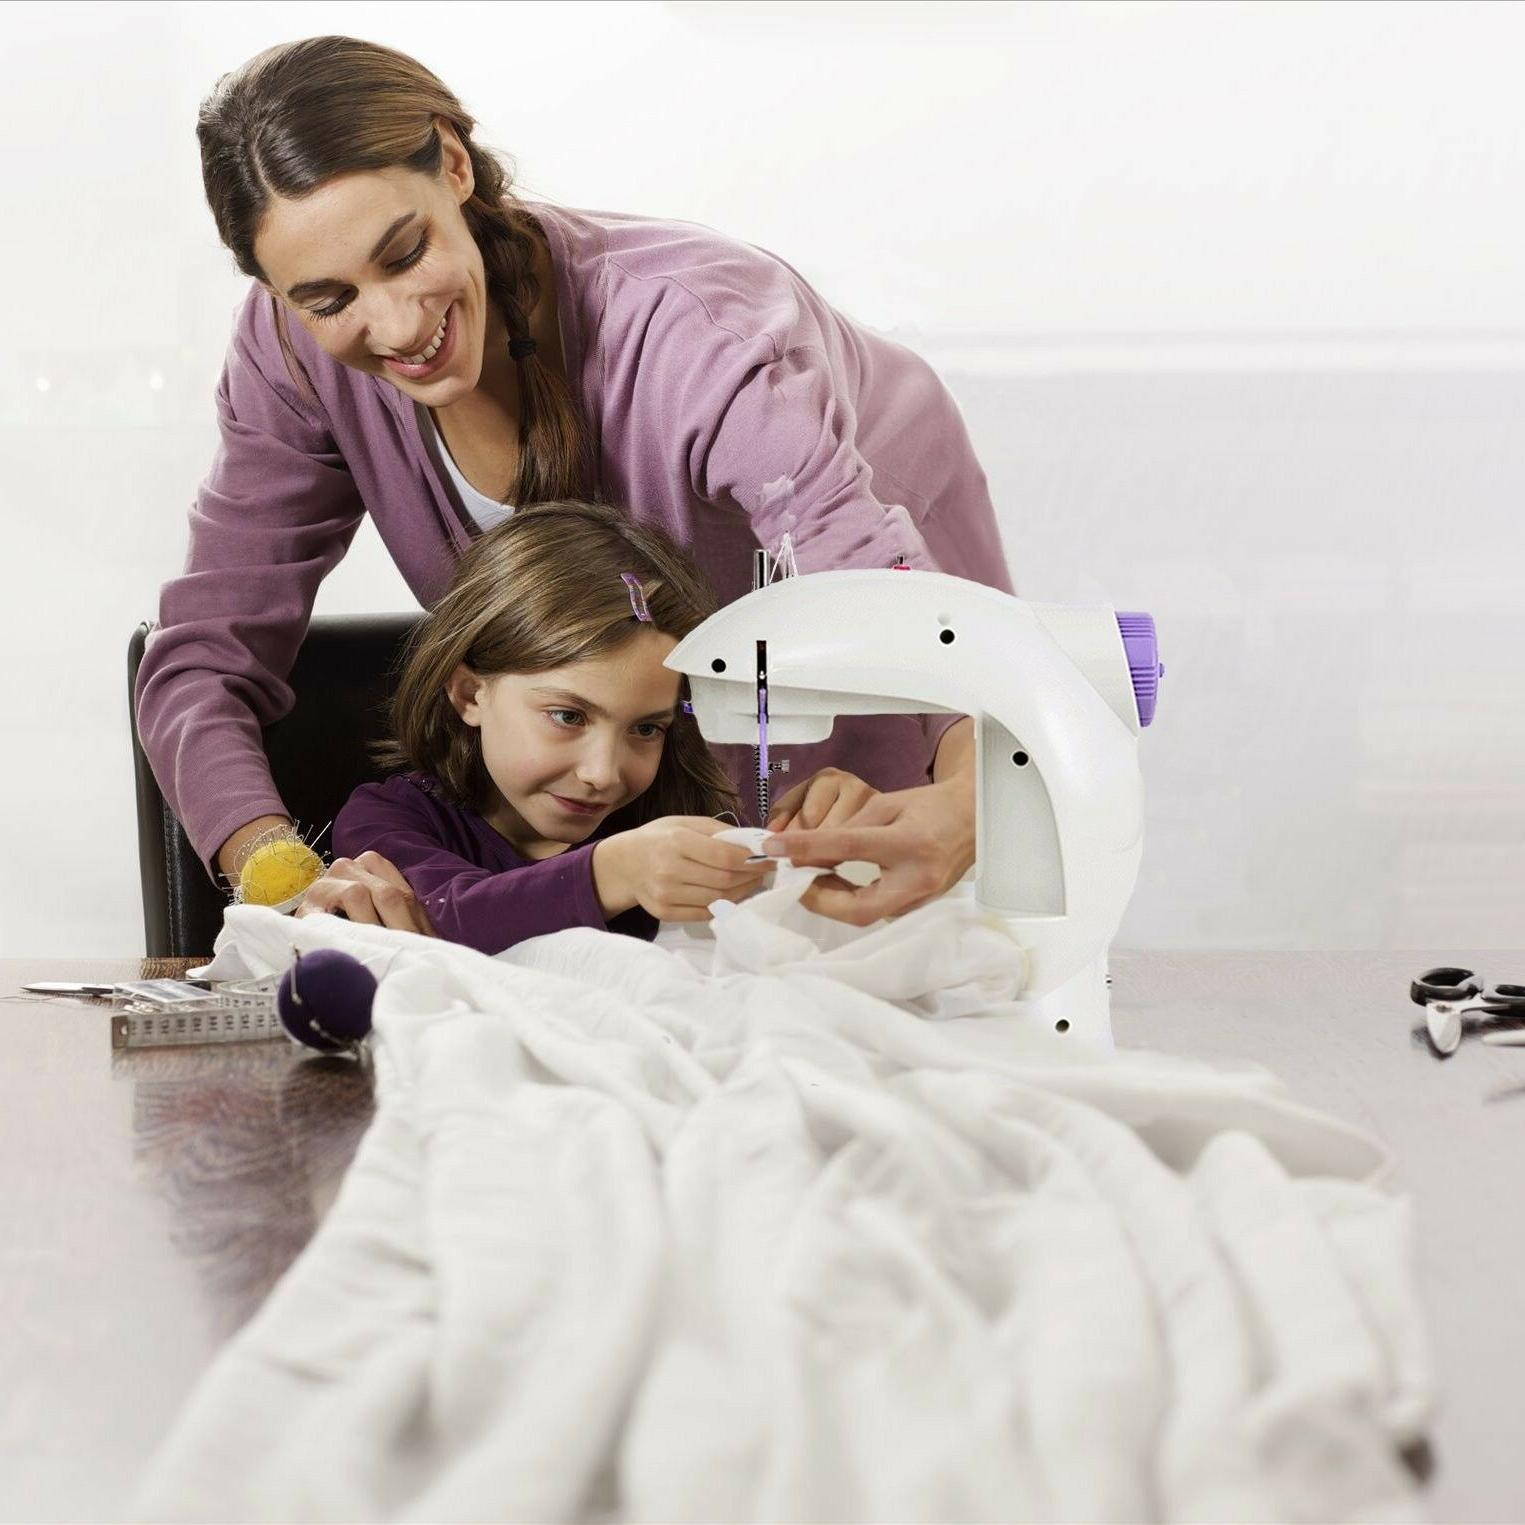 Portable Beginners Kids Adult Sewing Machine Mending With Table